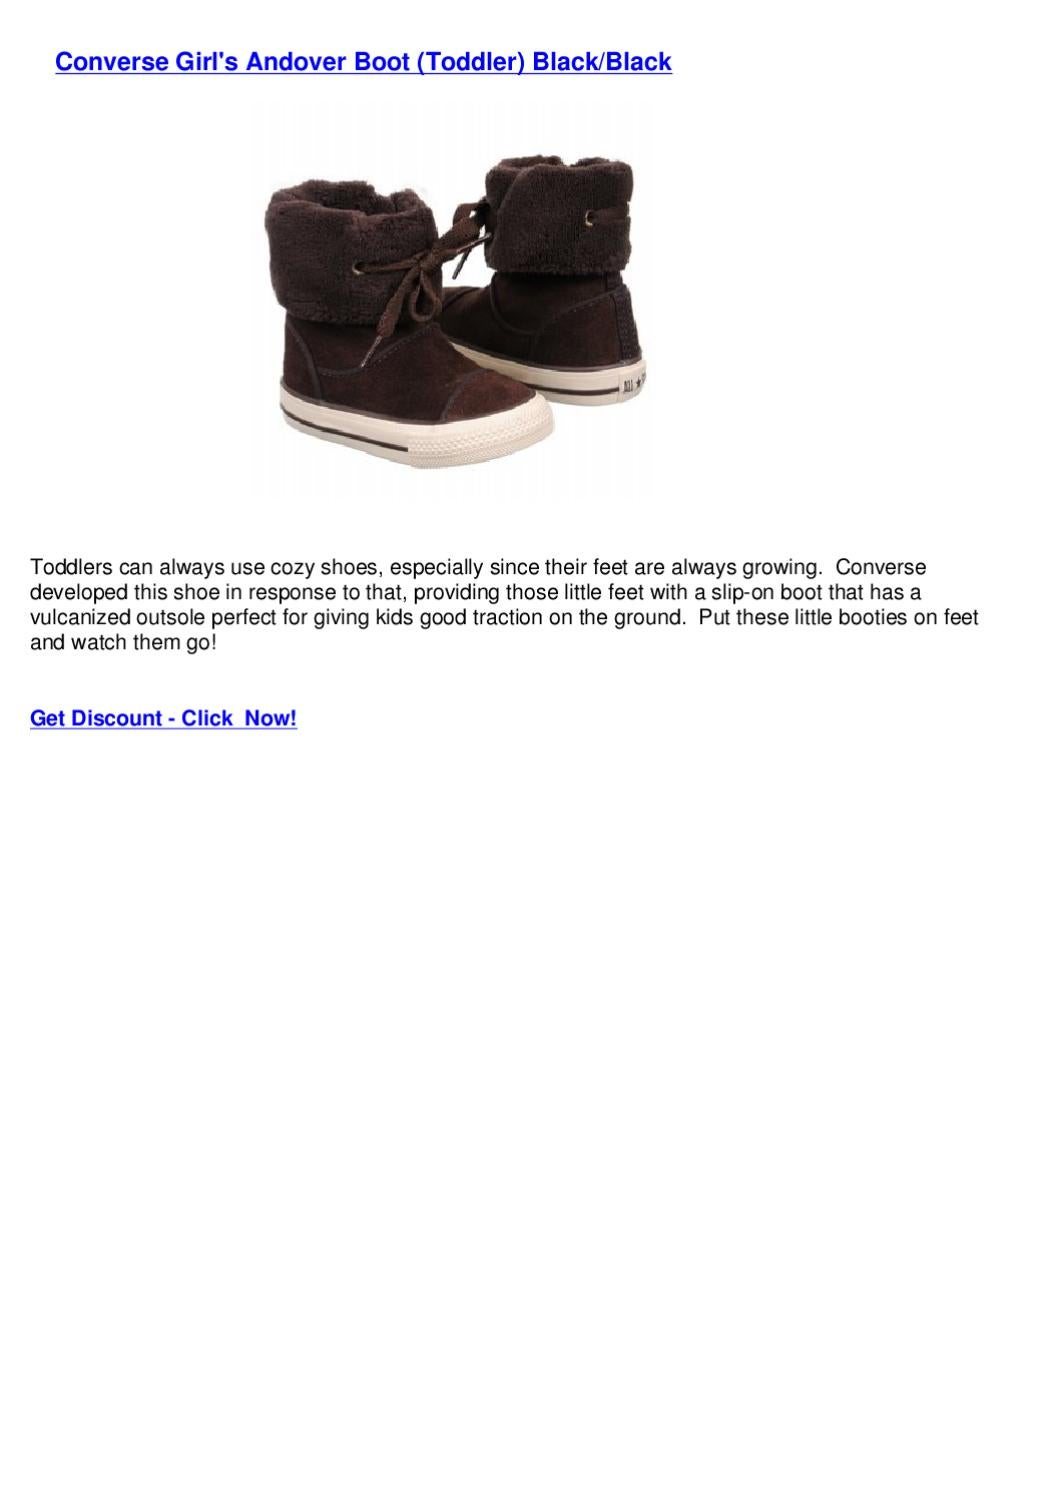 cb7aeb64a137f1 Converse Girl s Andover Boot (Toddler) BlackBlack by Conword Shoess - issuu